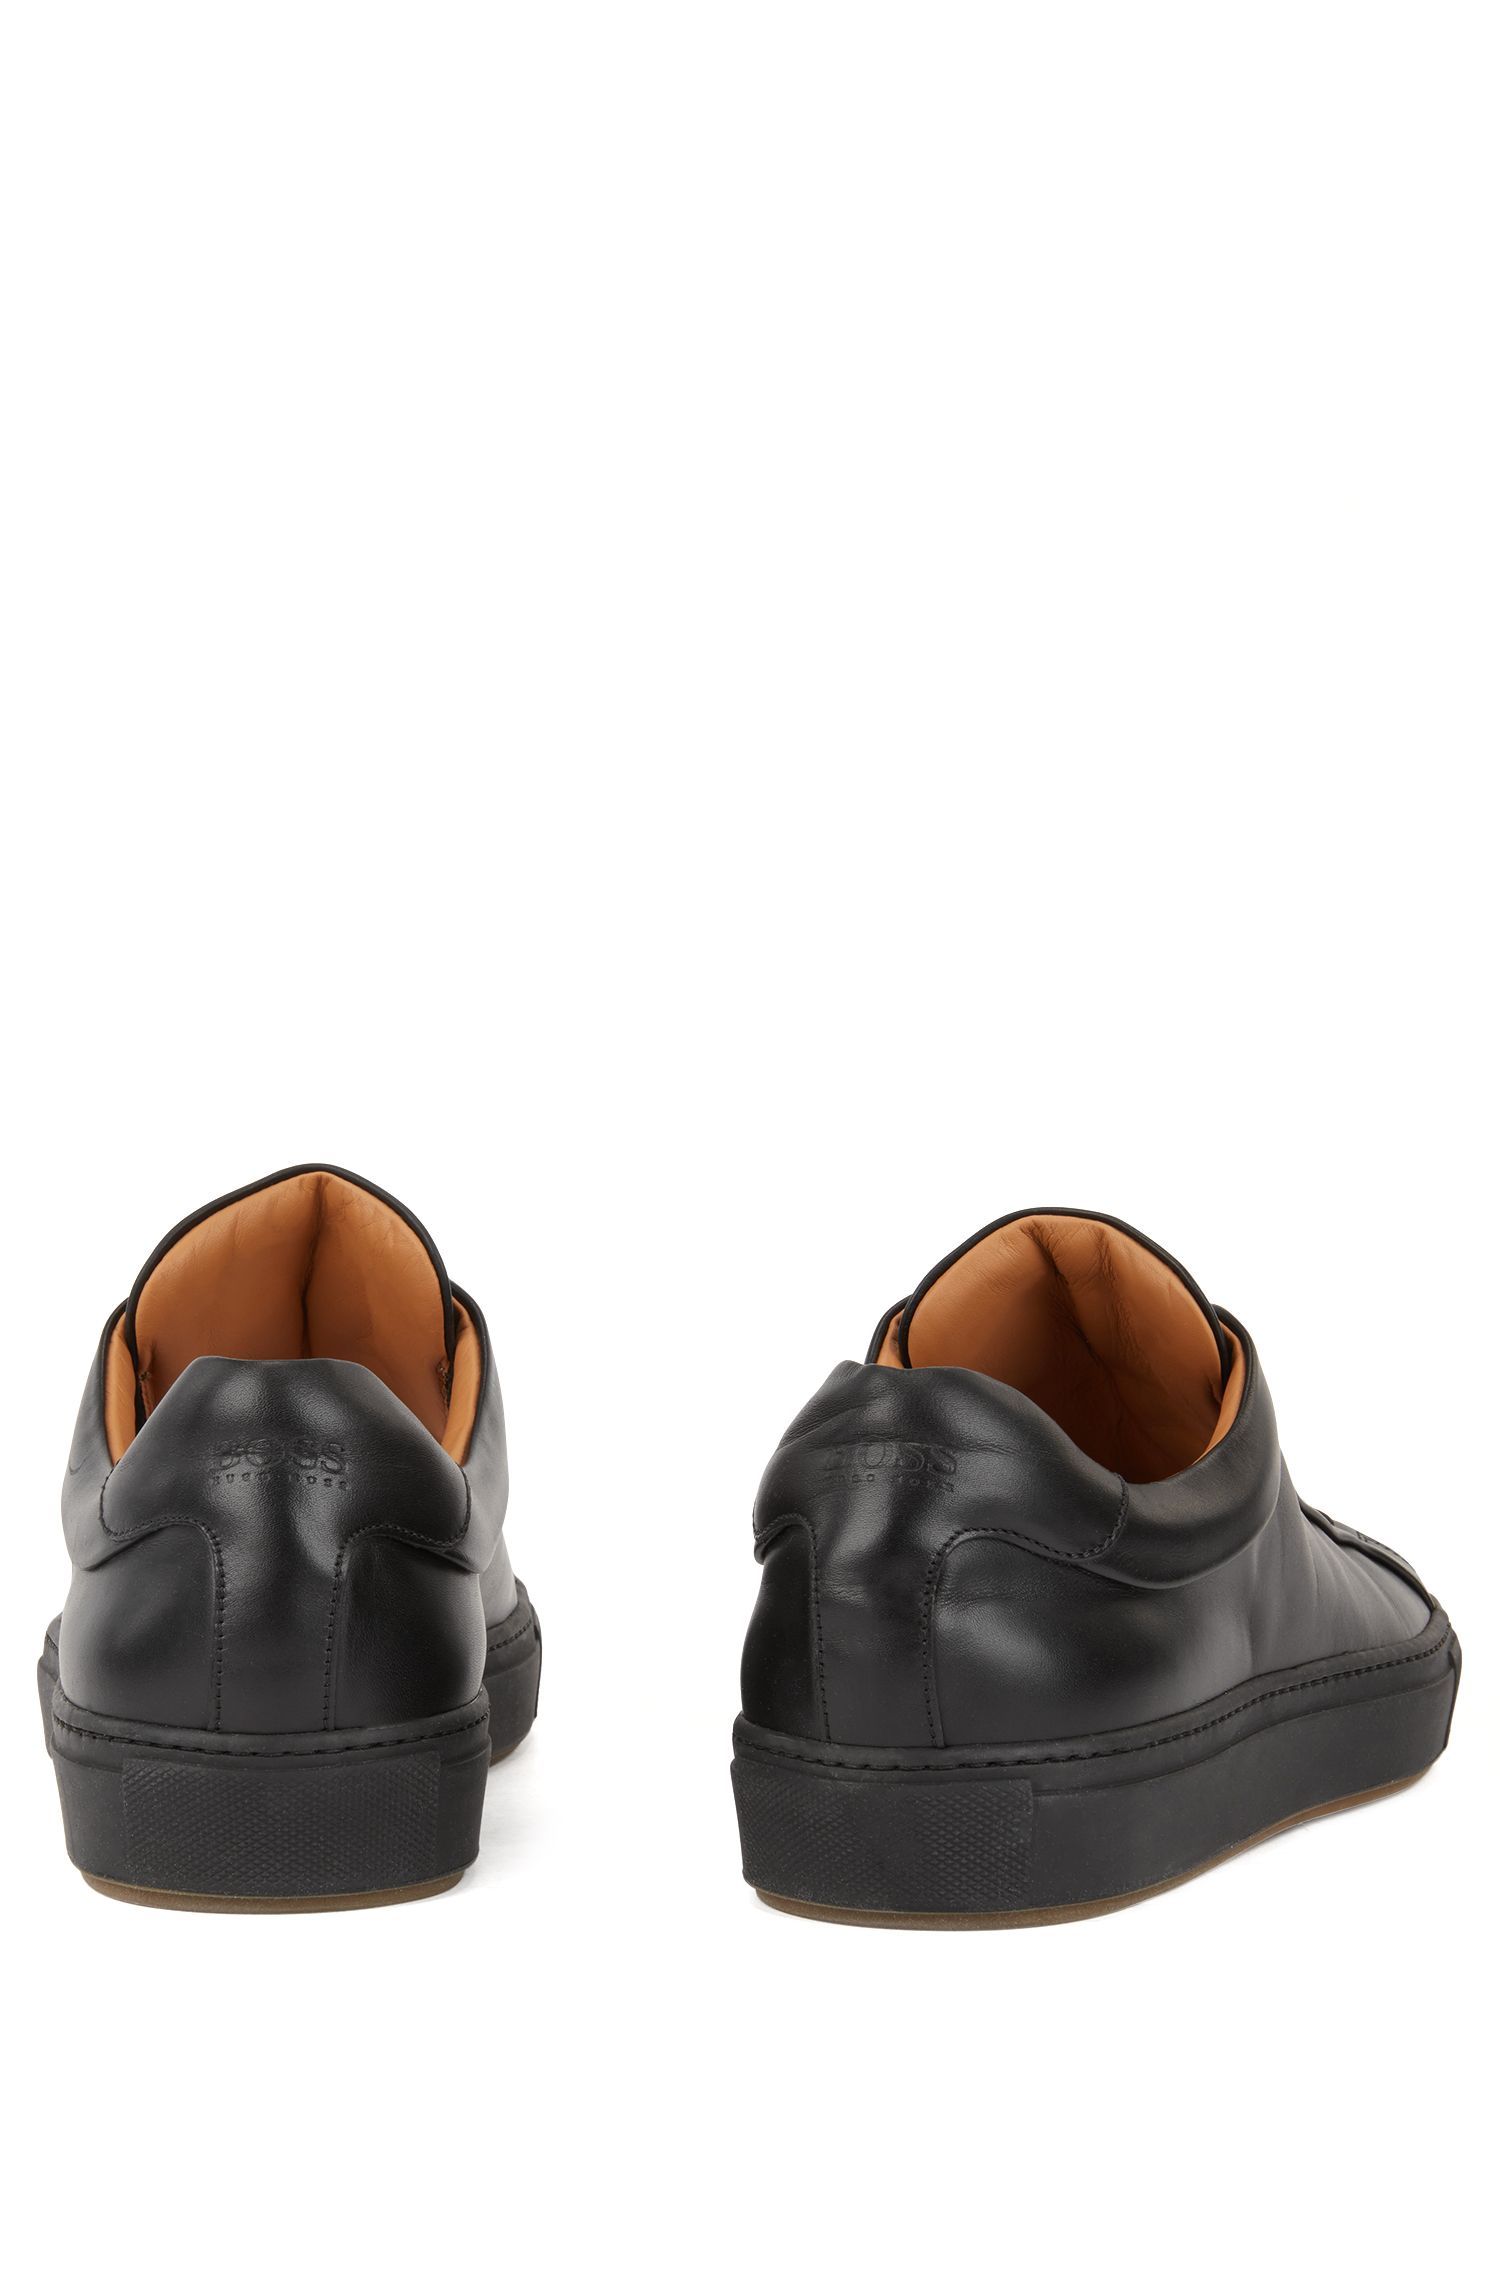 Tennis-style sneakers in burnished leather, Black